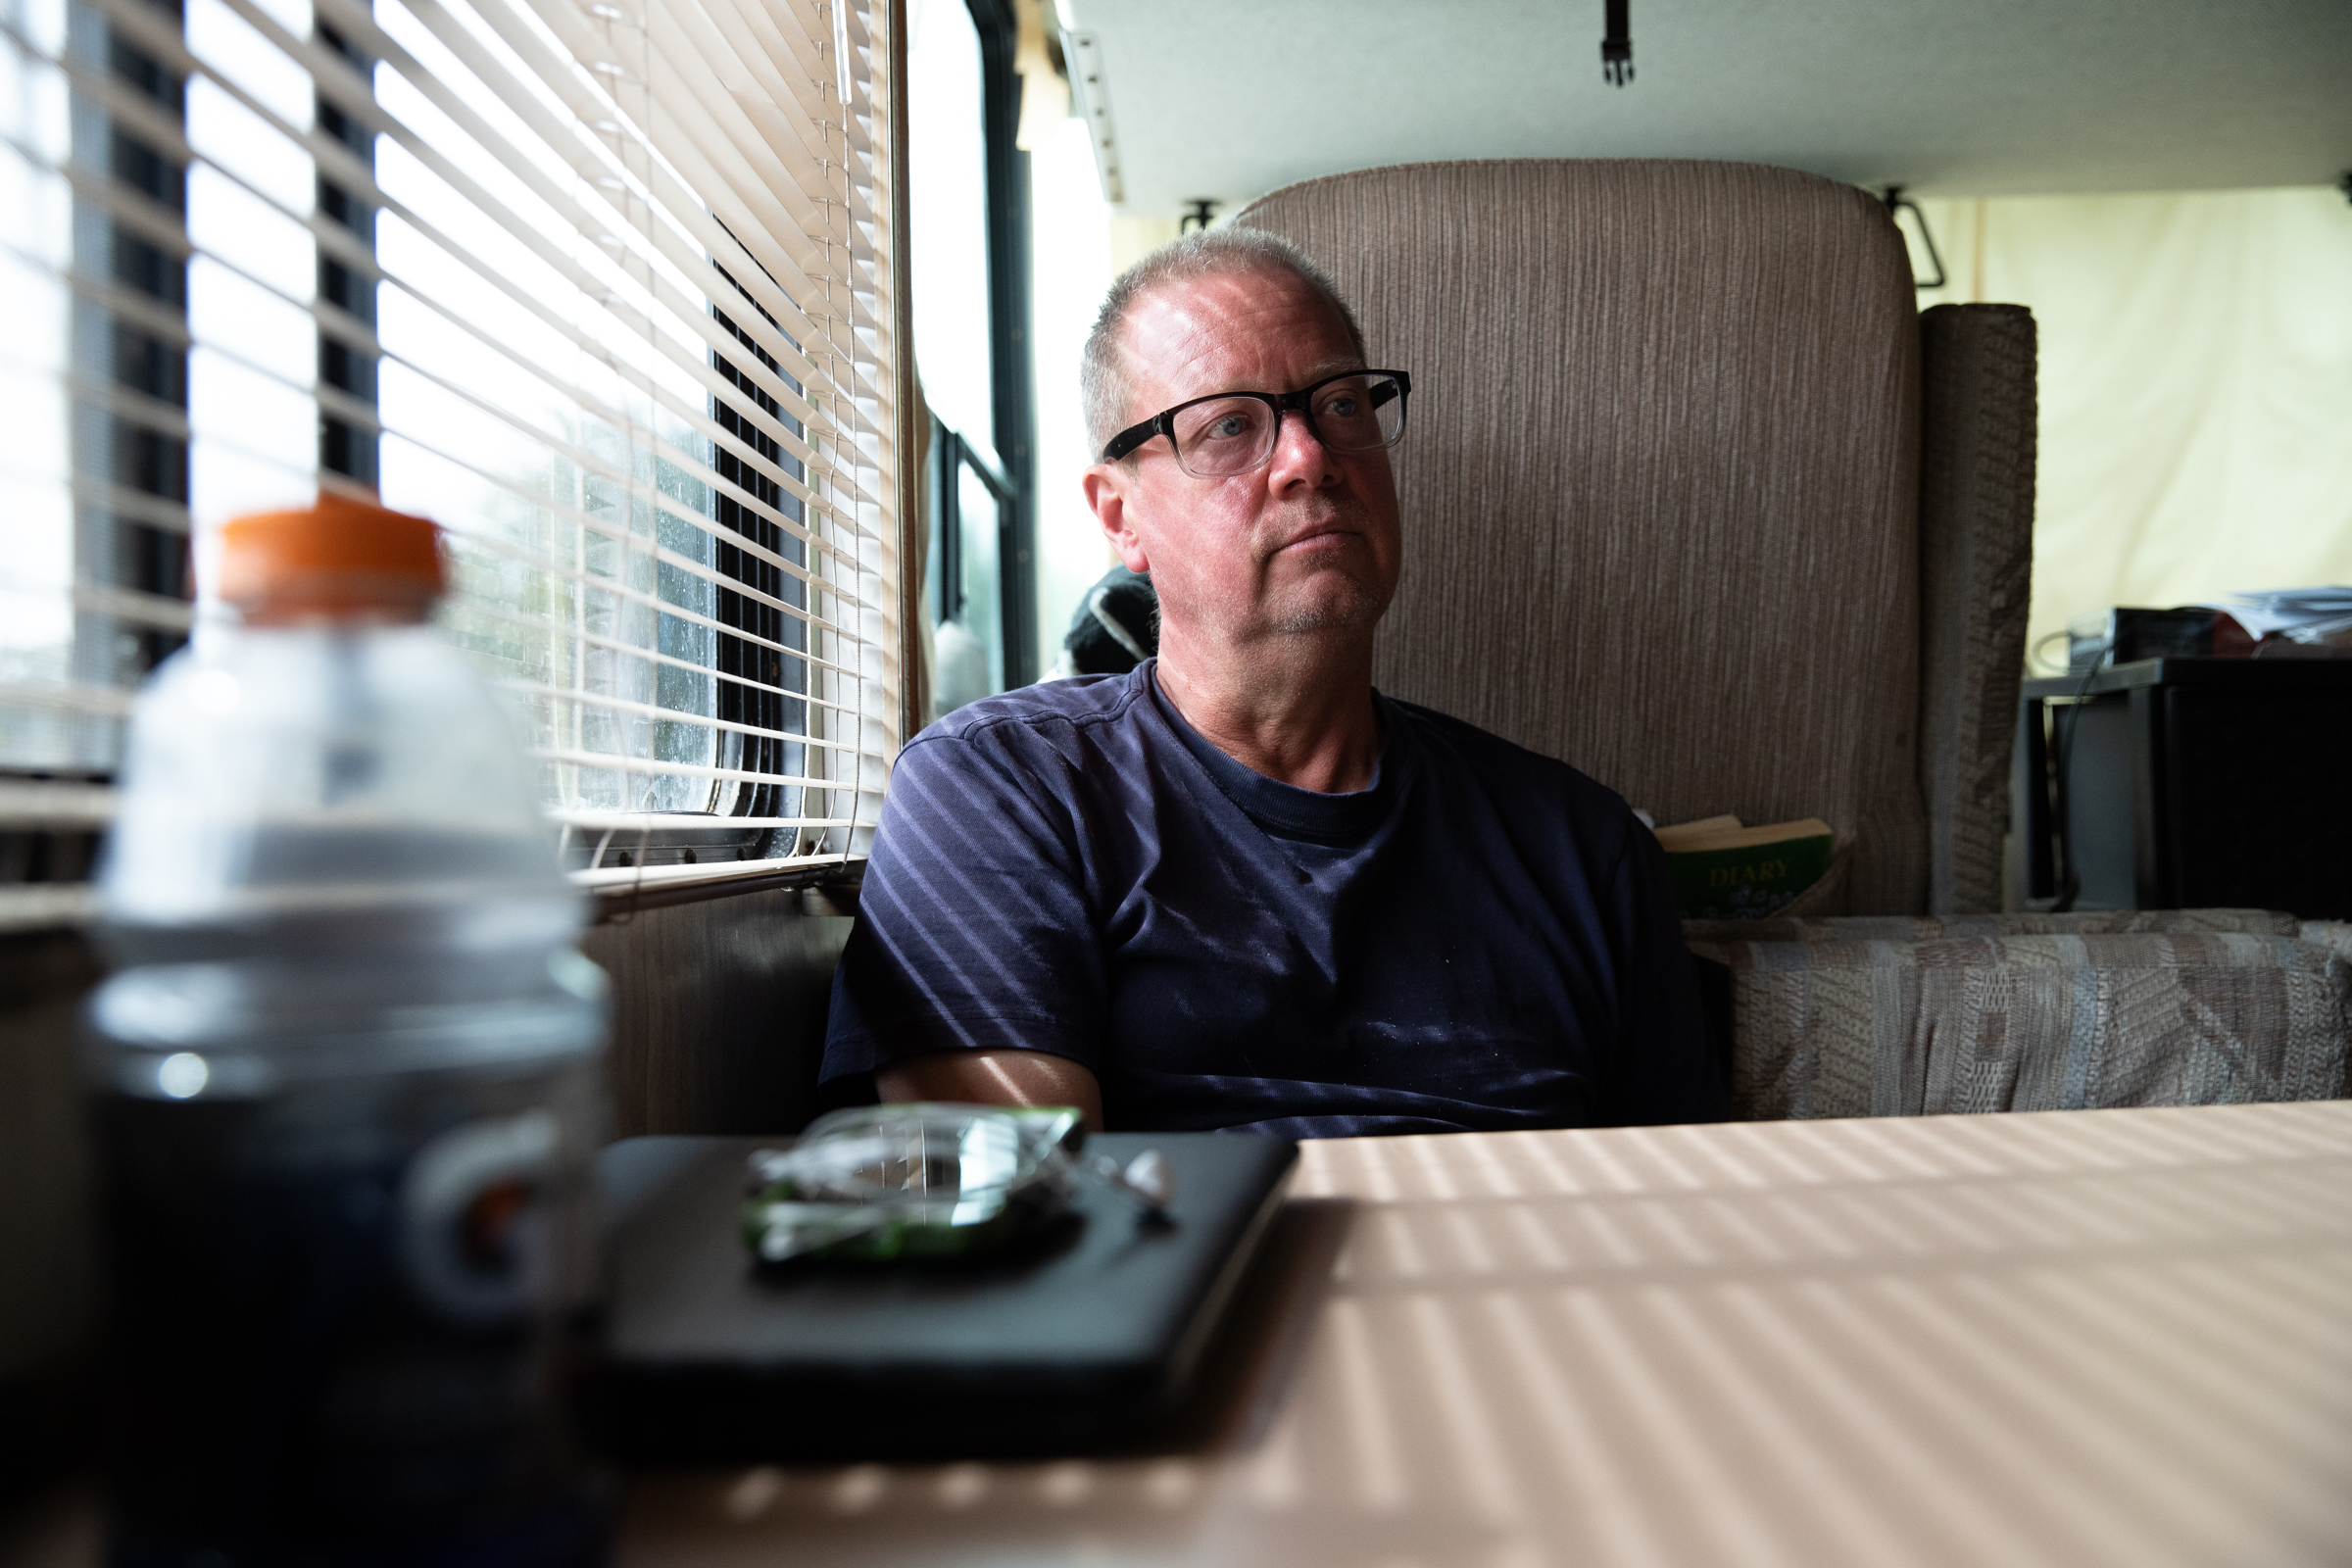 Scott Rodvold in his RV in Mountain View, California, on March 8.